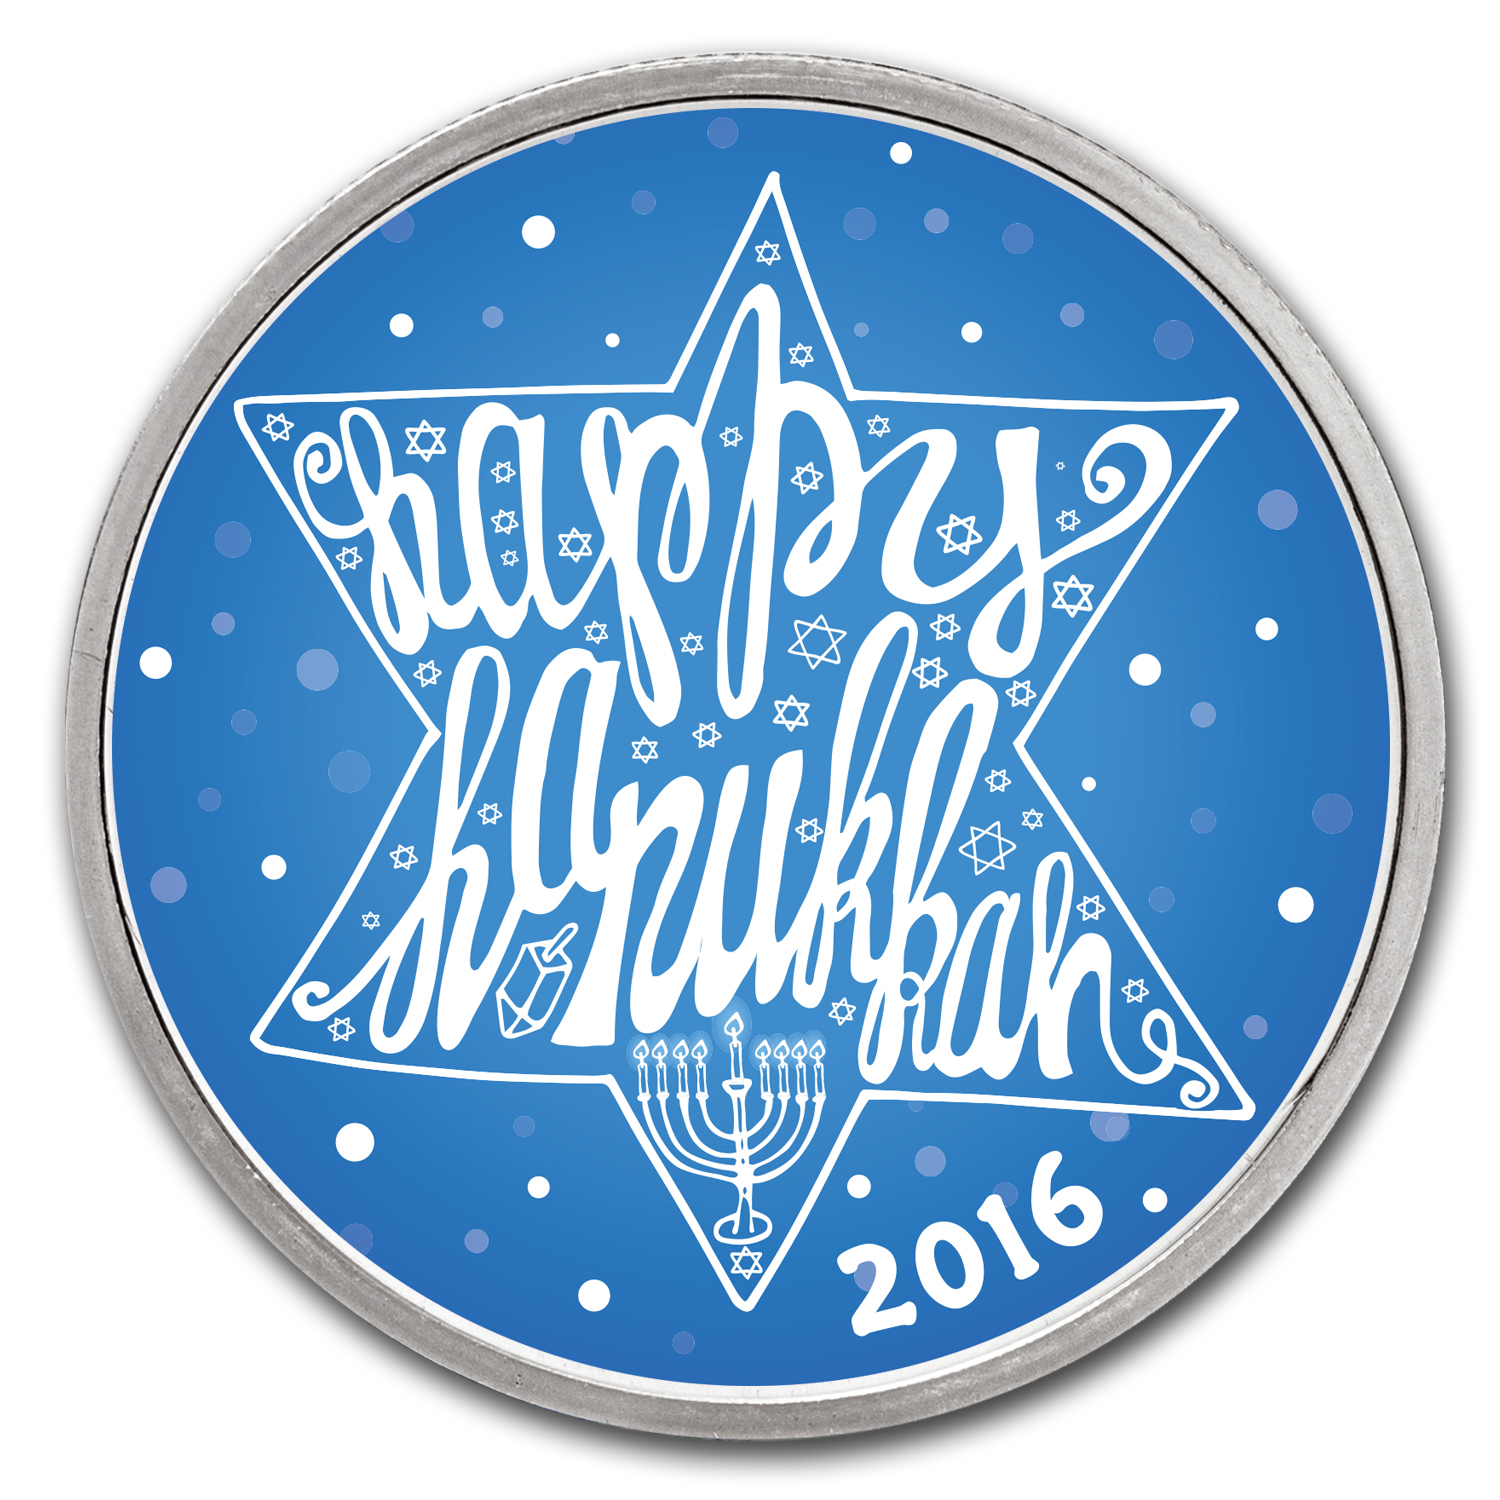 1 oz Silver Colorized Round - APMEX (Hanukkah Star of David)